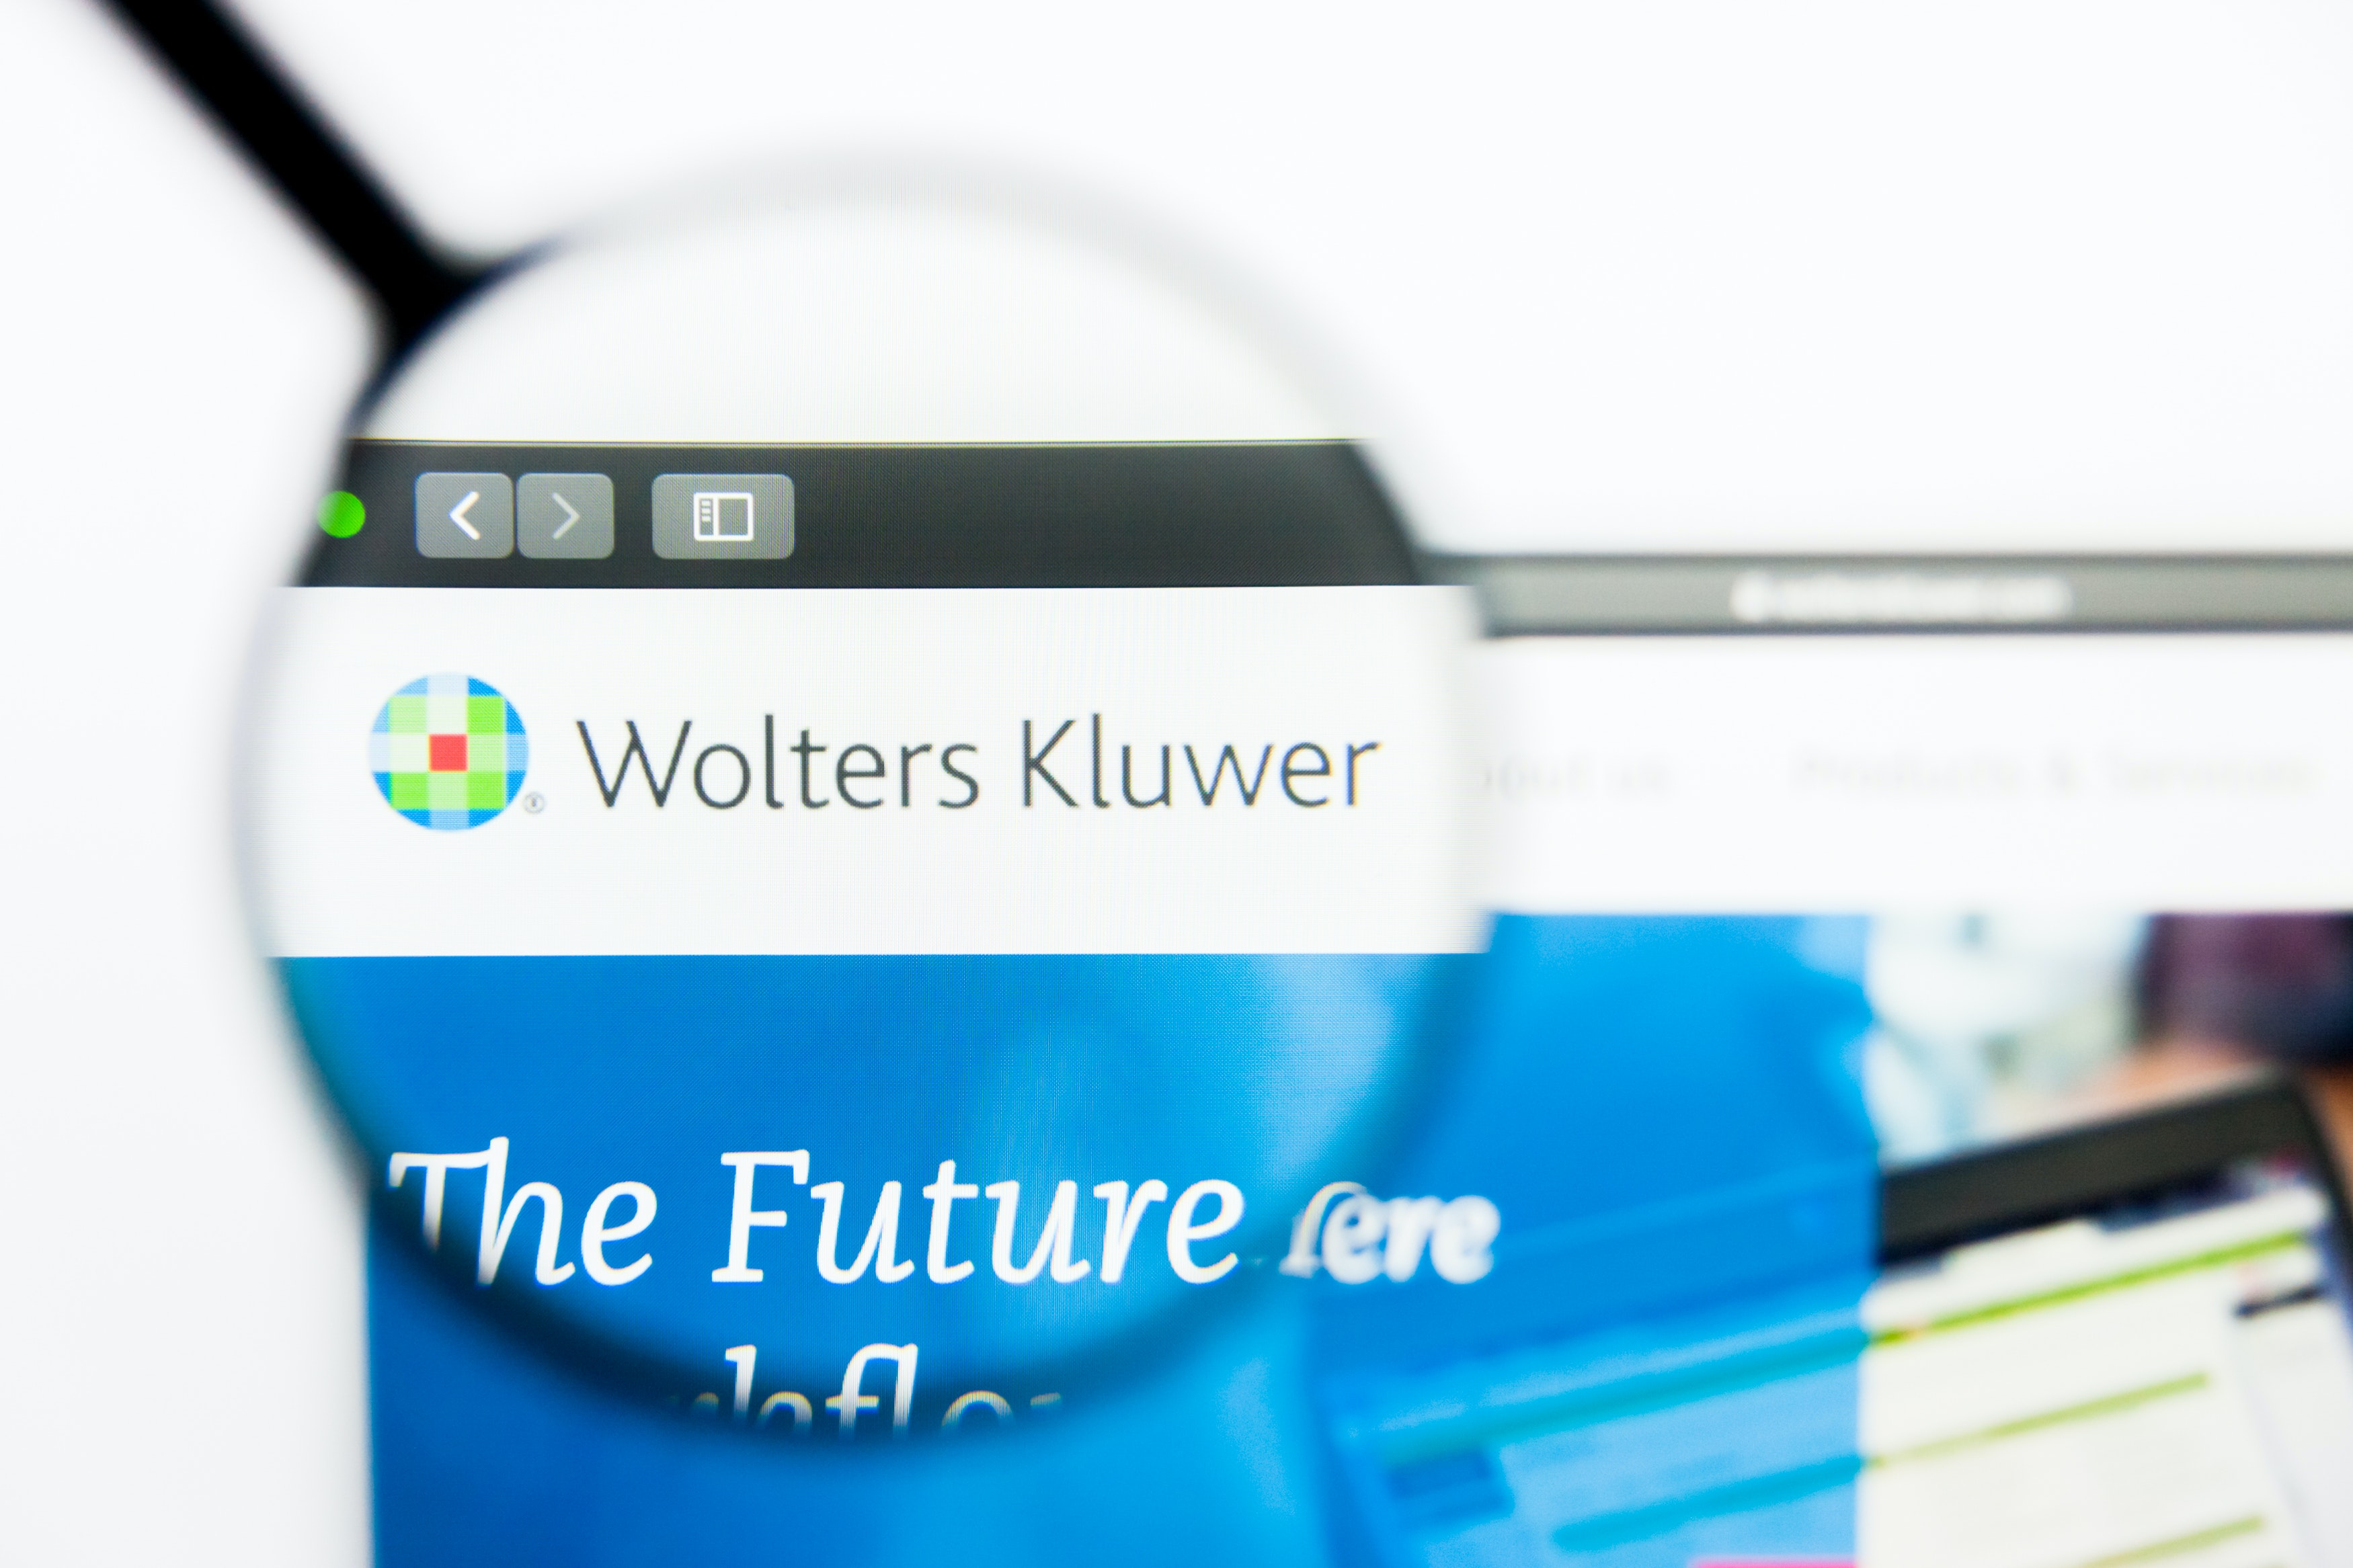 Wolters Kluwer in browser tab with magnifying glass